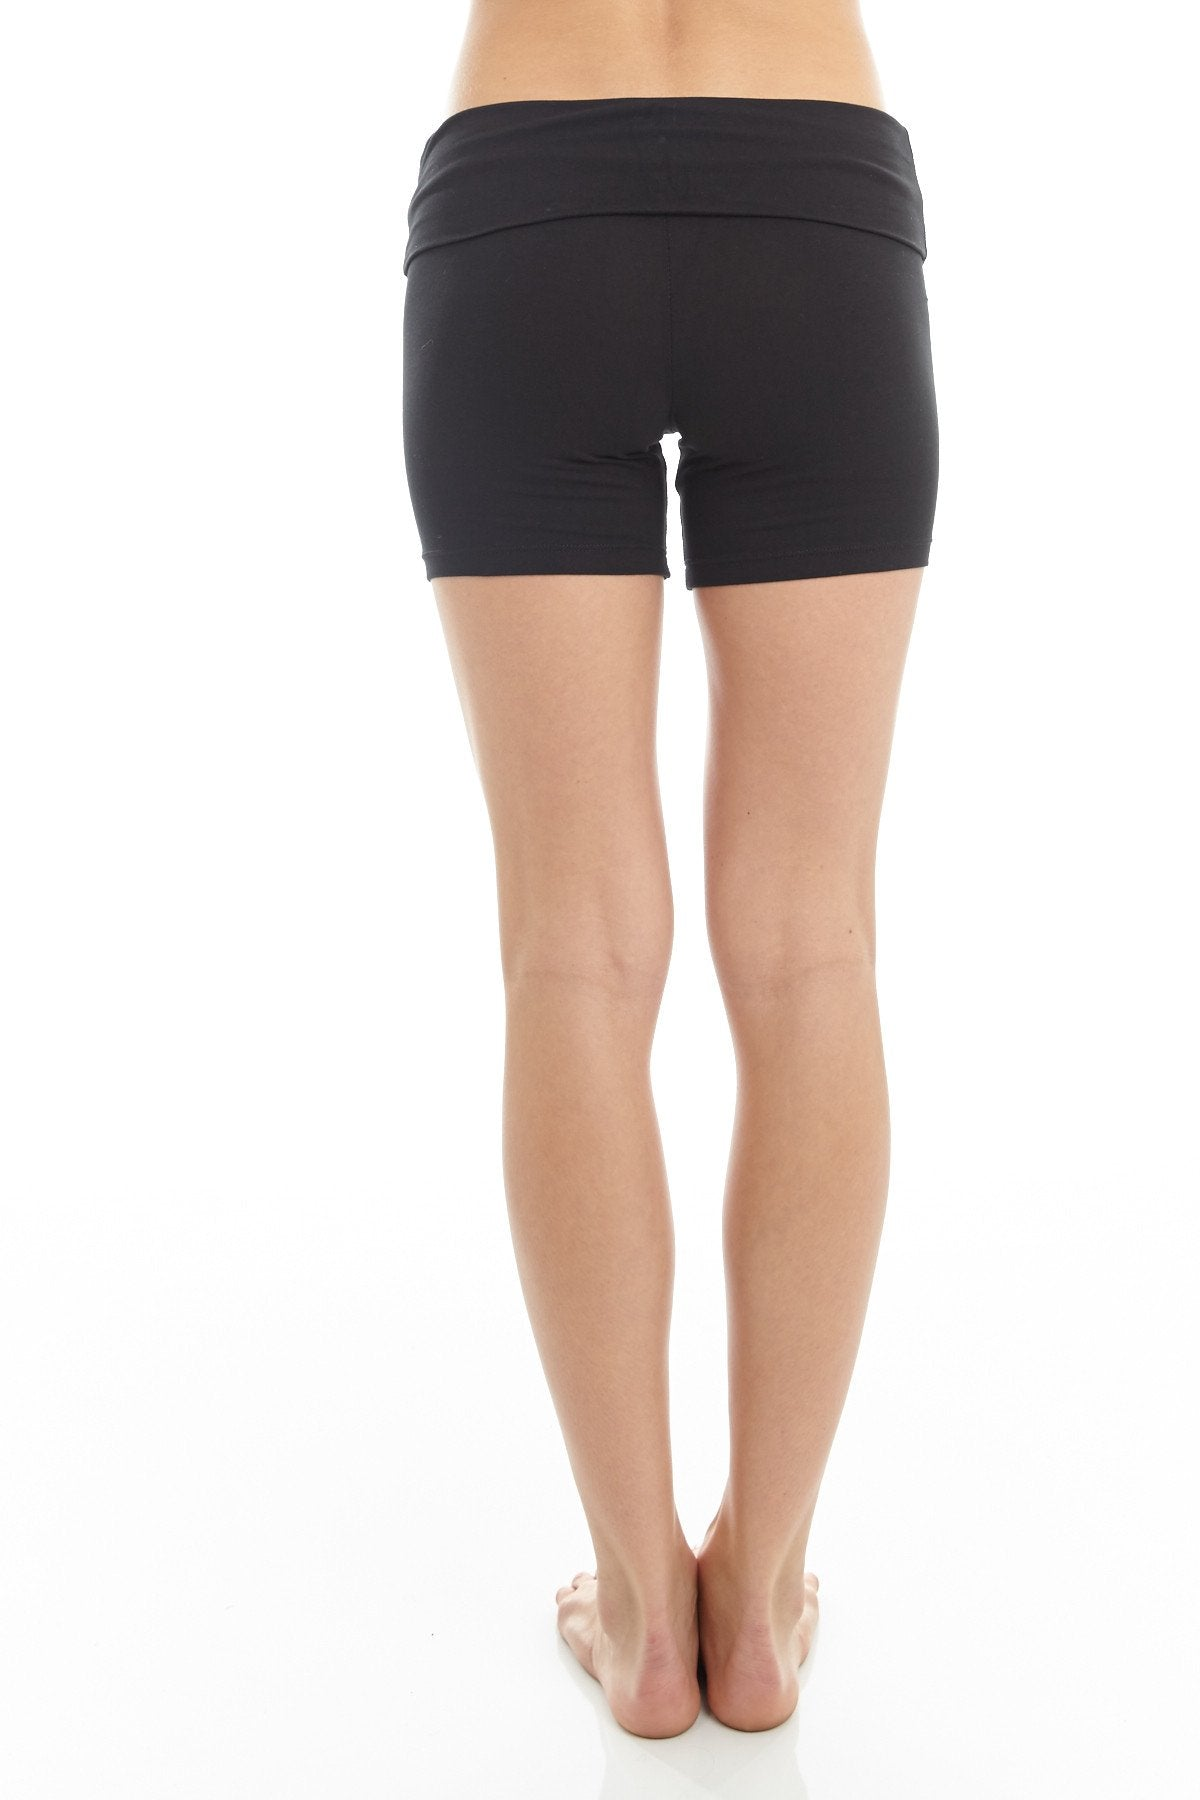 'Trini' Yoga Shorts Black - Shorts